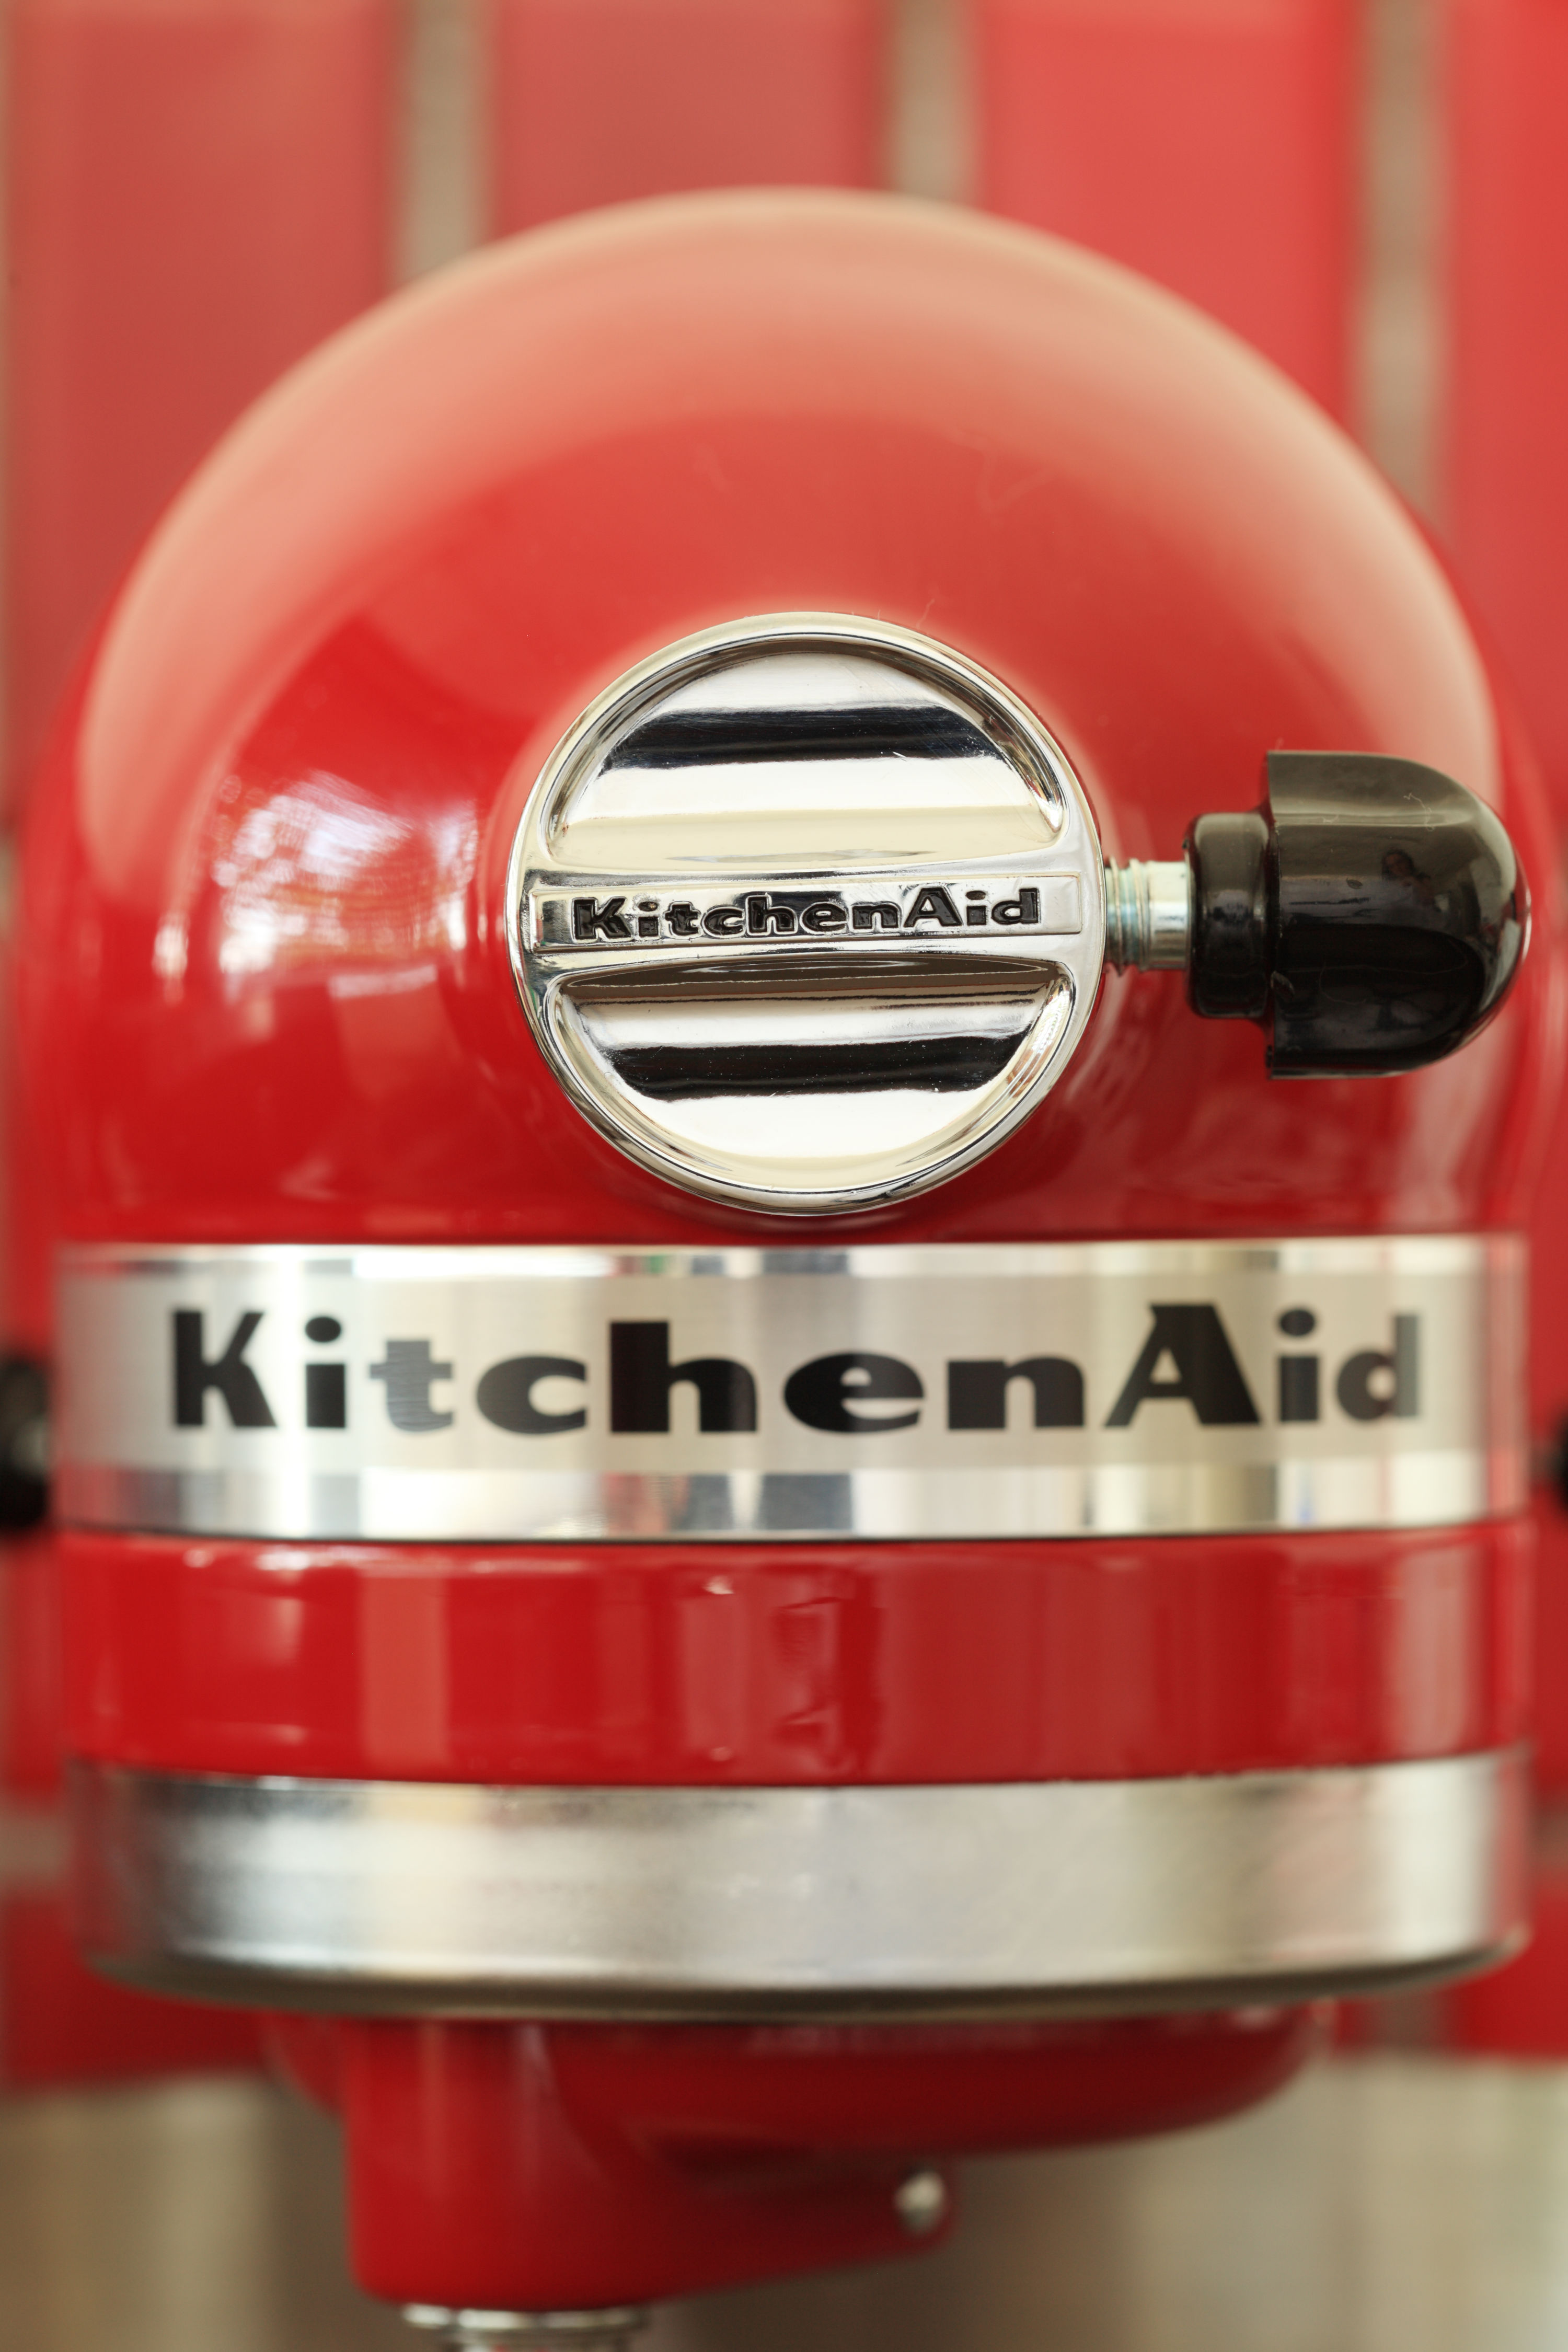 Do Old Attachments Work on Your New KitchenAid?